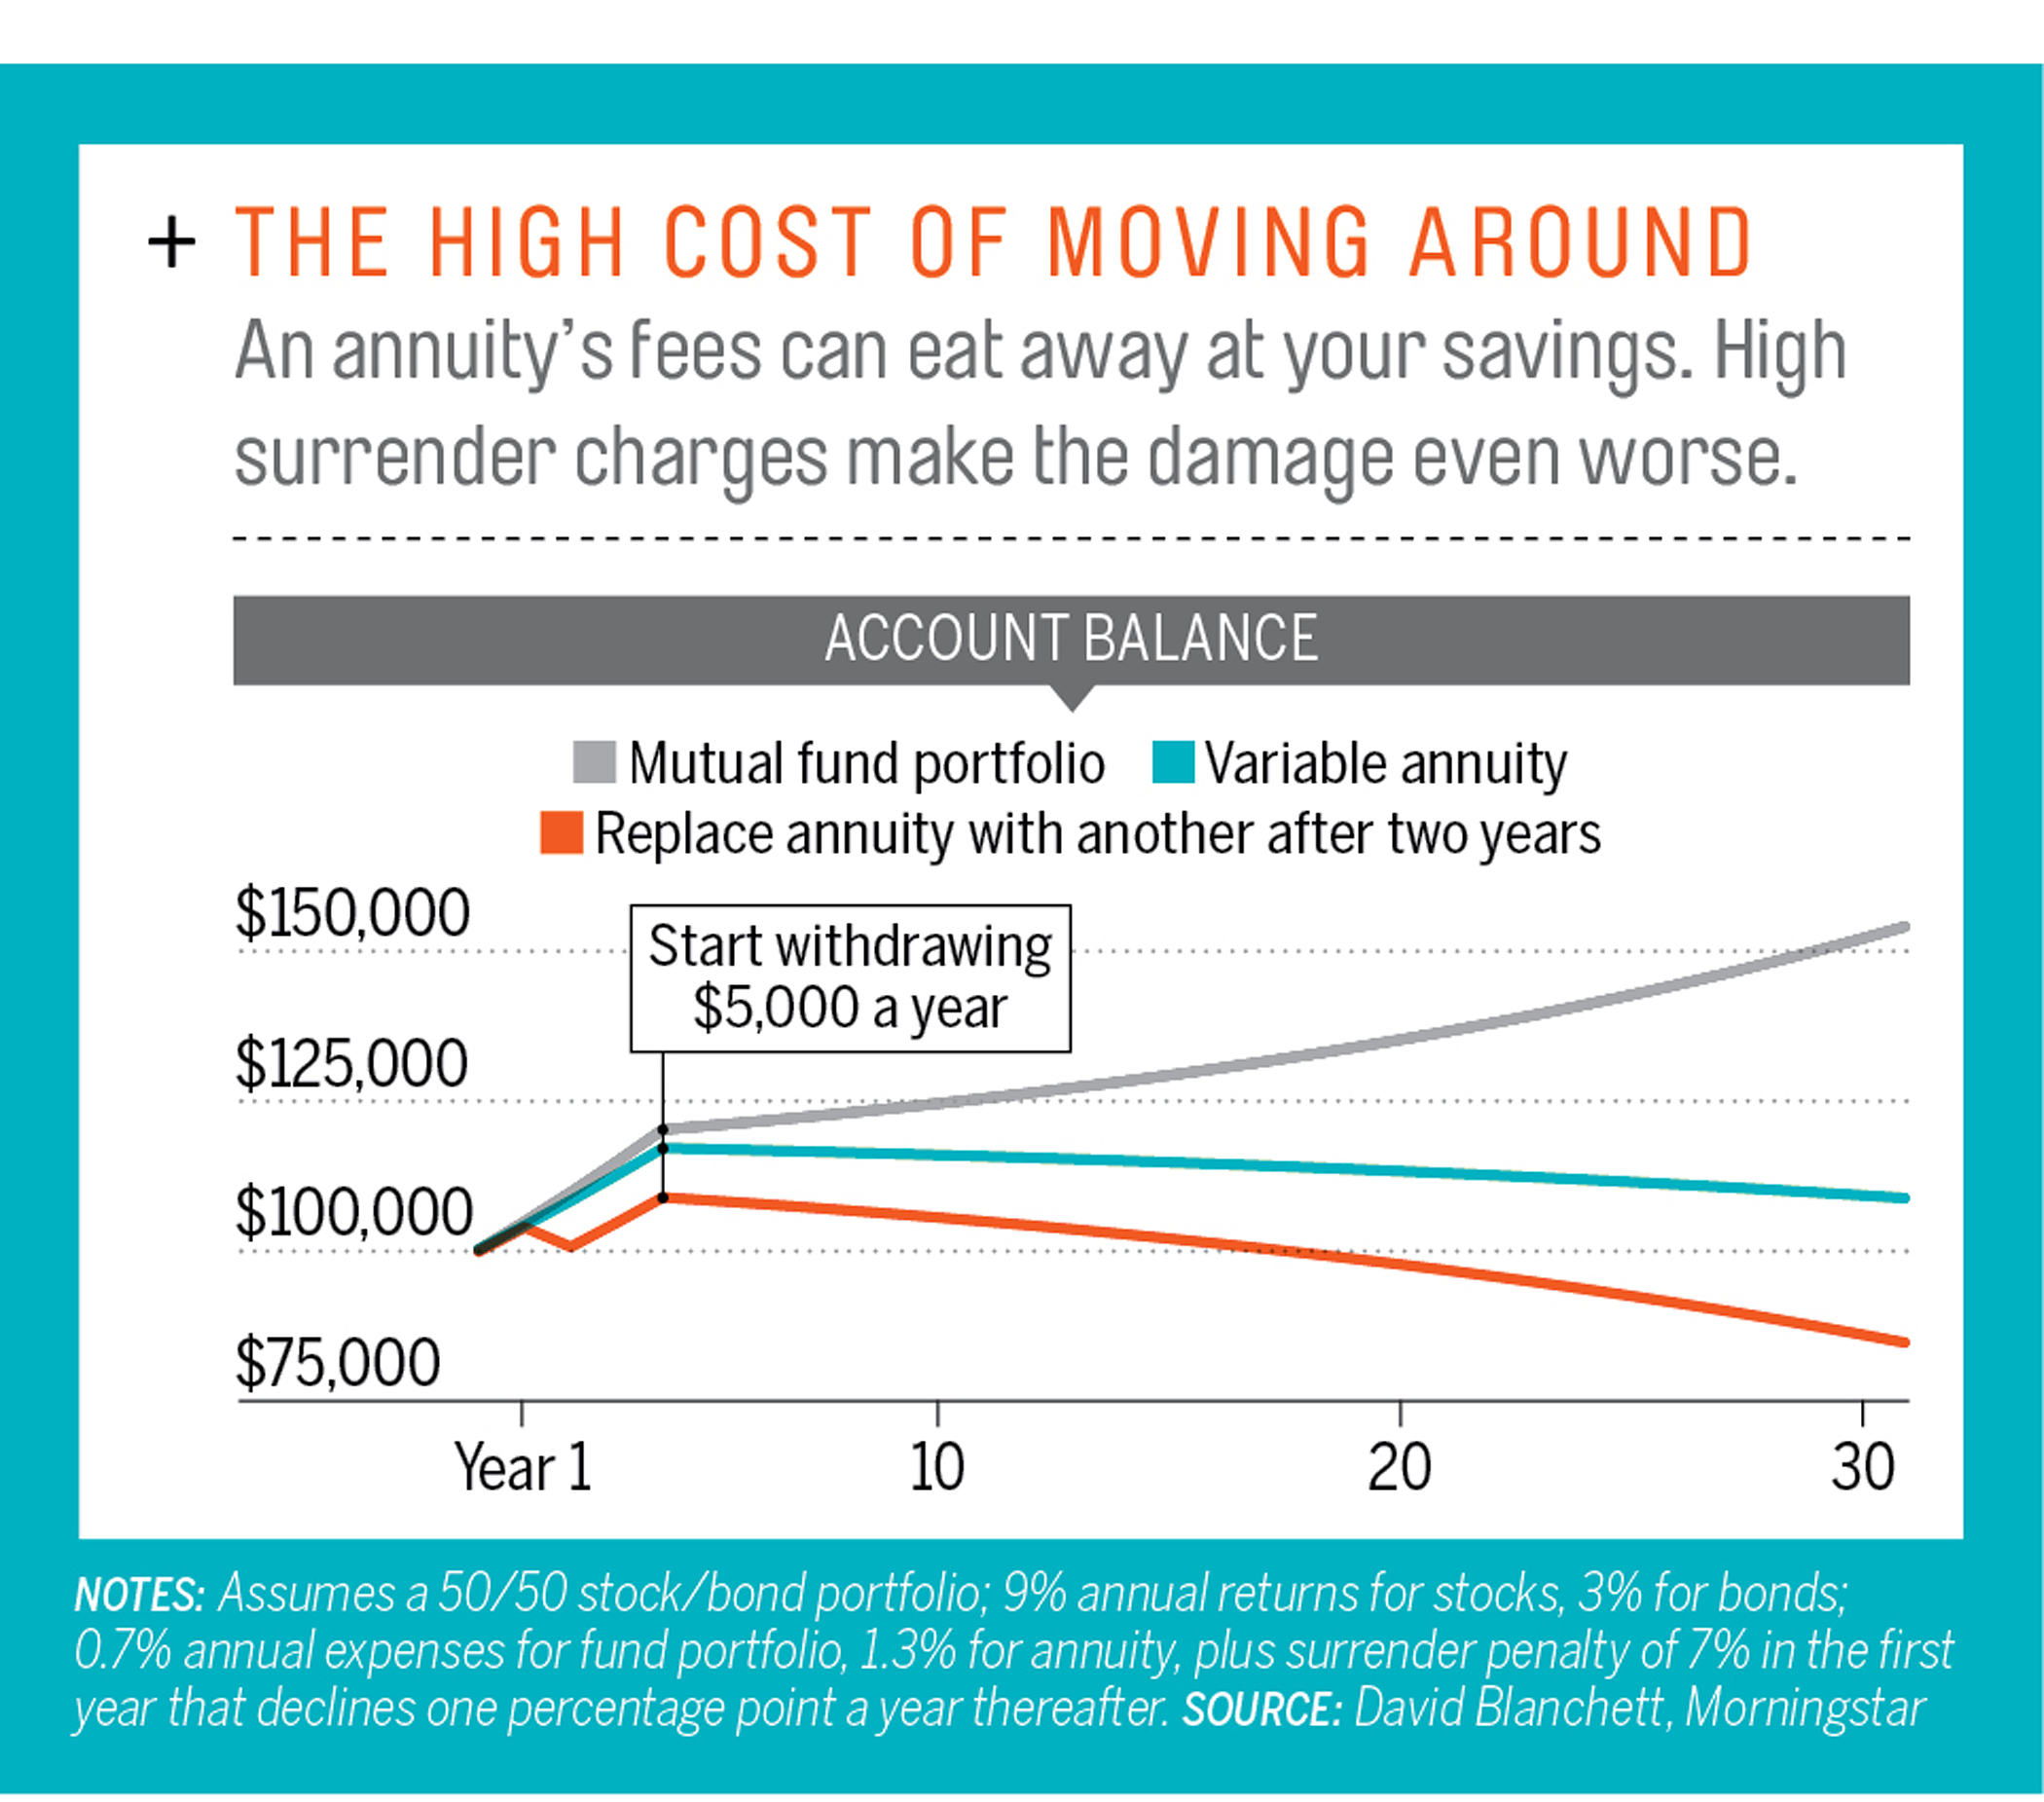 The High Cost of Moving Around